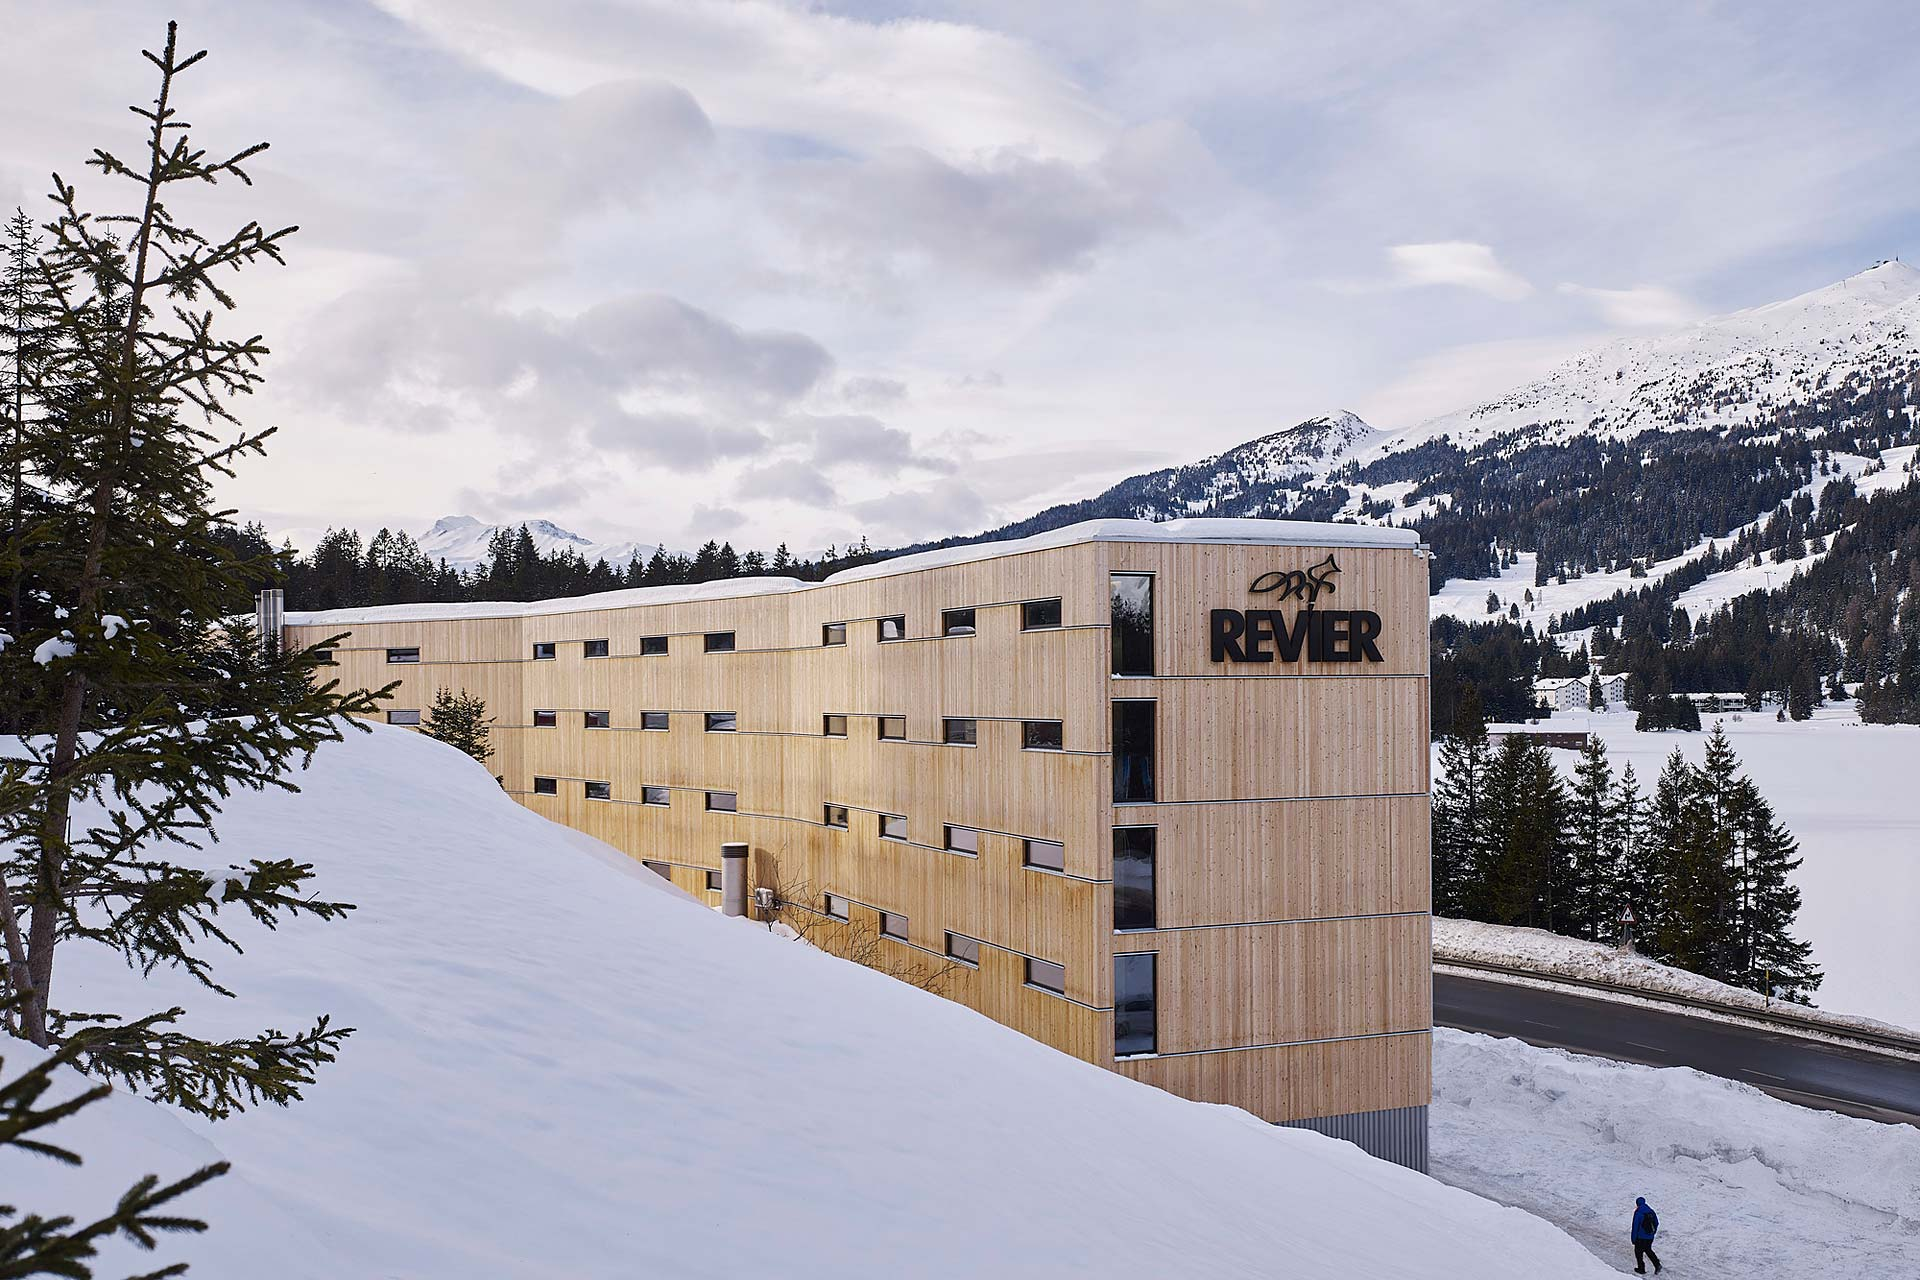 Revier Mountain Lodge